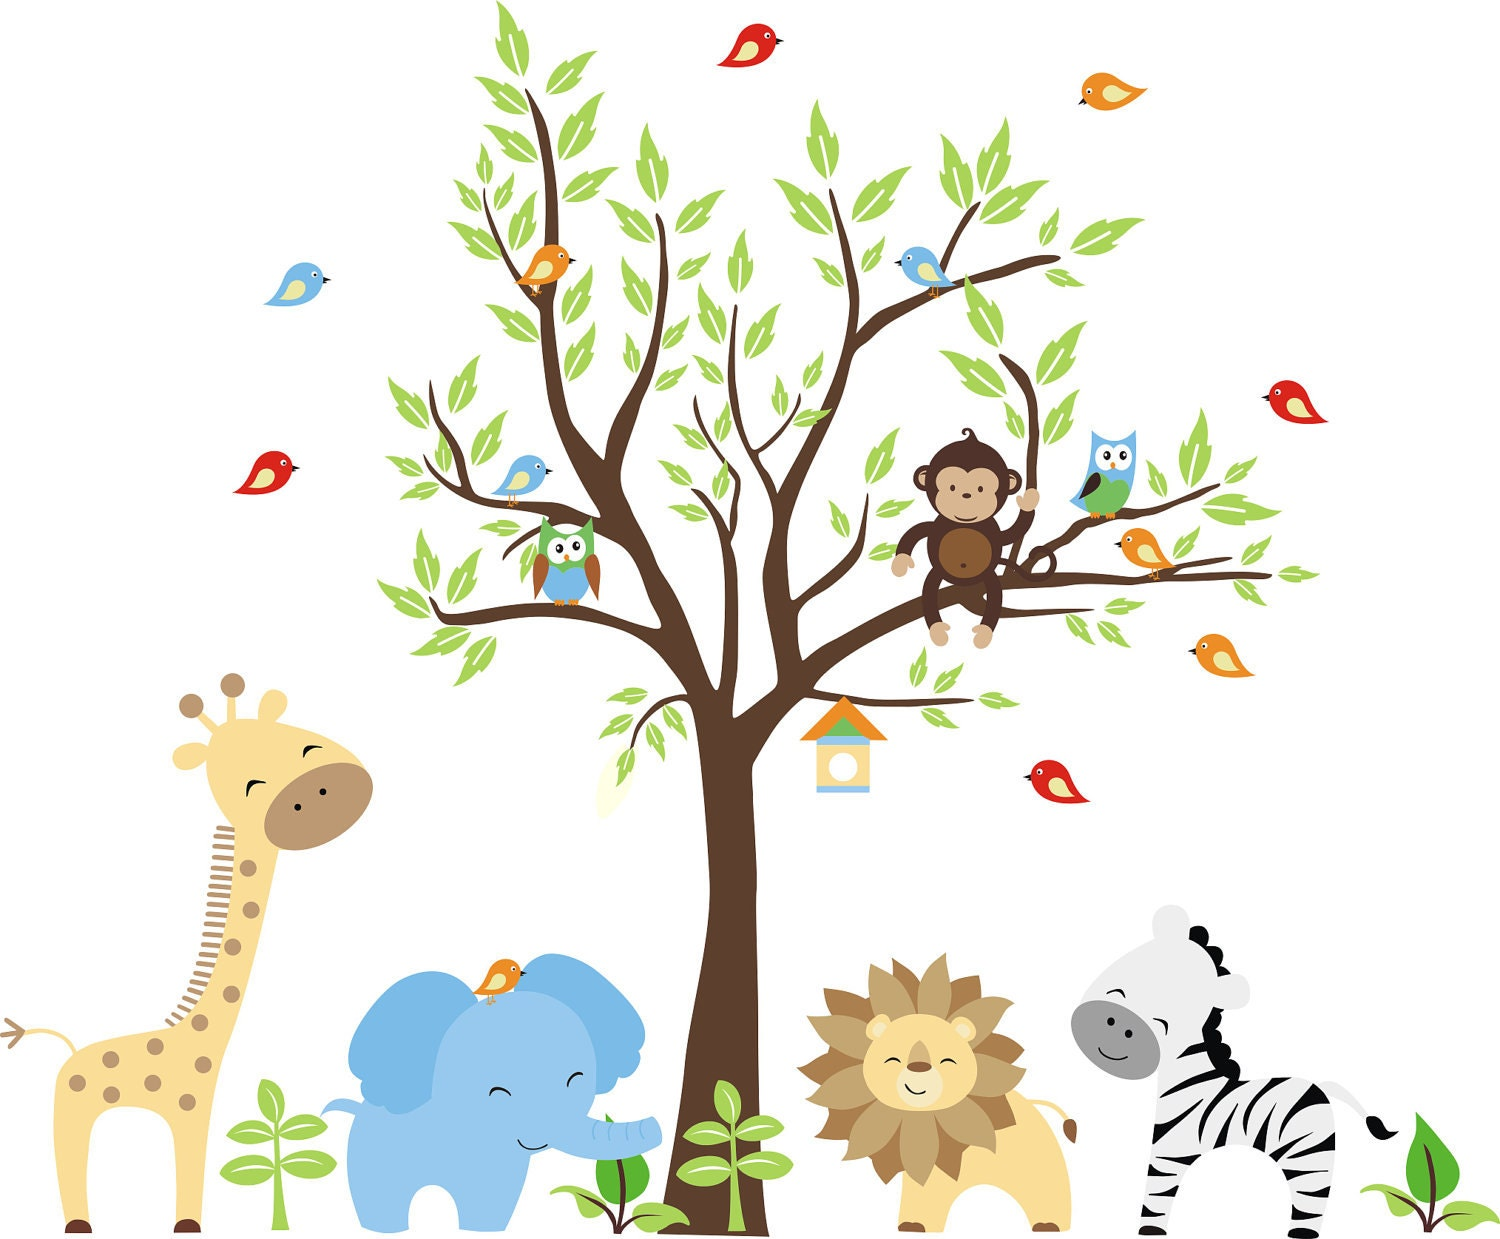 Brewster Childrens Jungle Wall Decals Jungle Home Decor - Nursery wall decals jungle